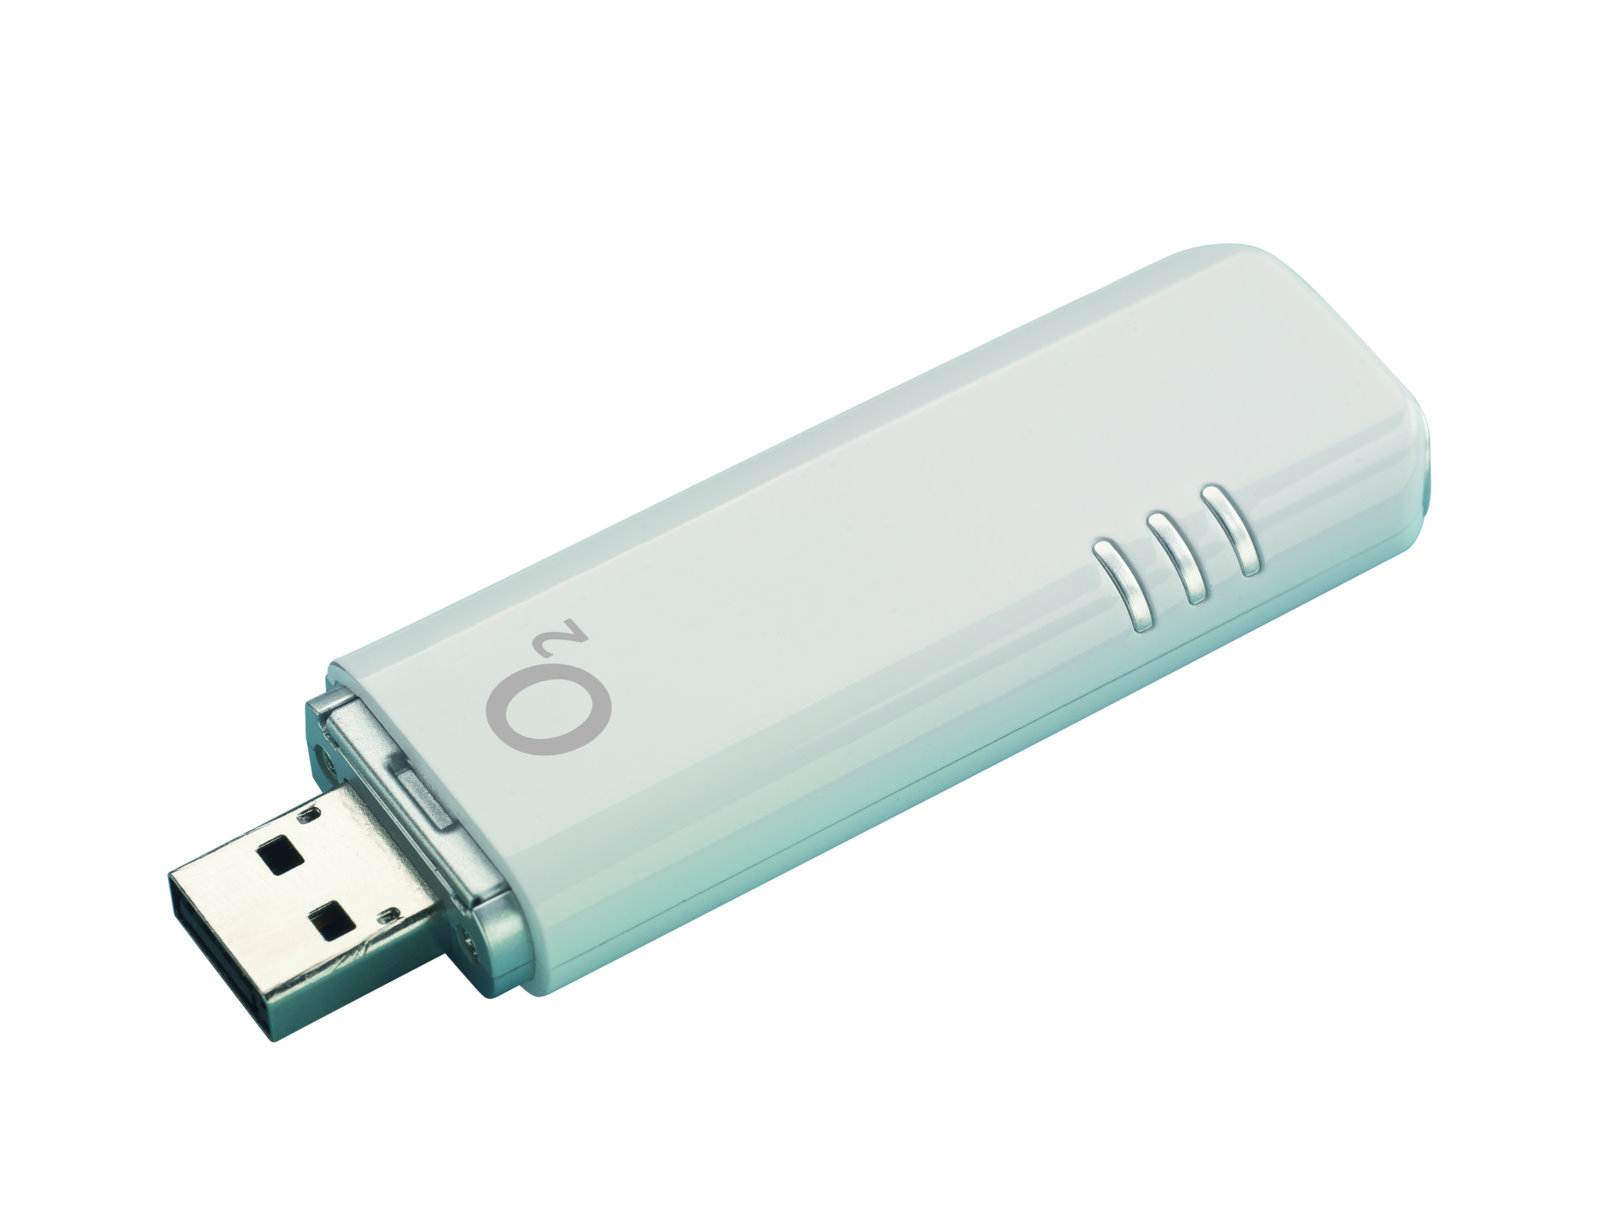 O2's Pay-as-you-go mobile internet dongle